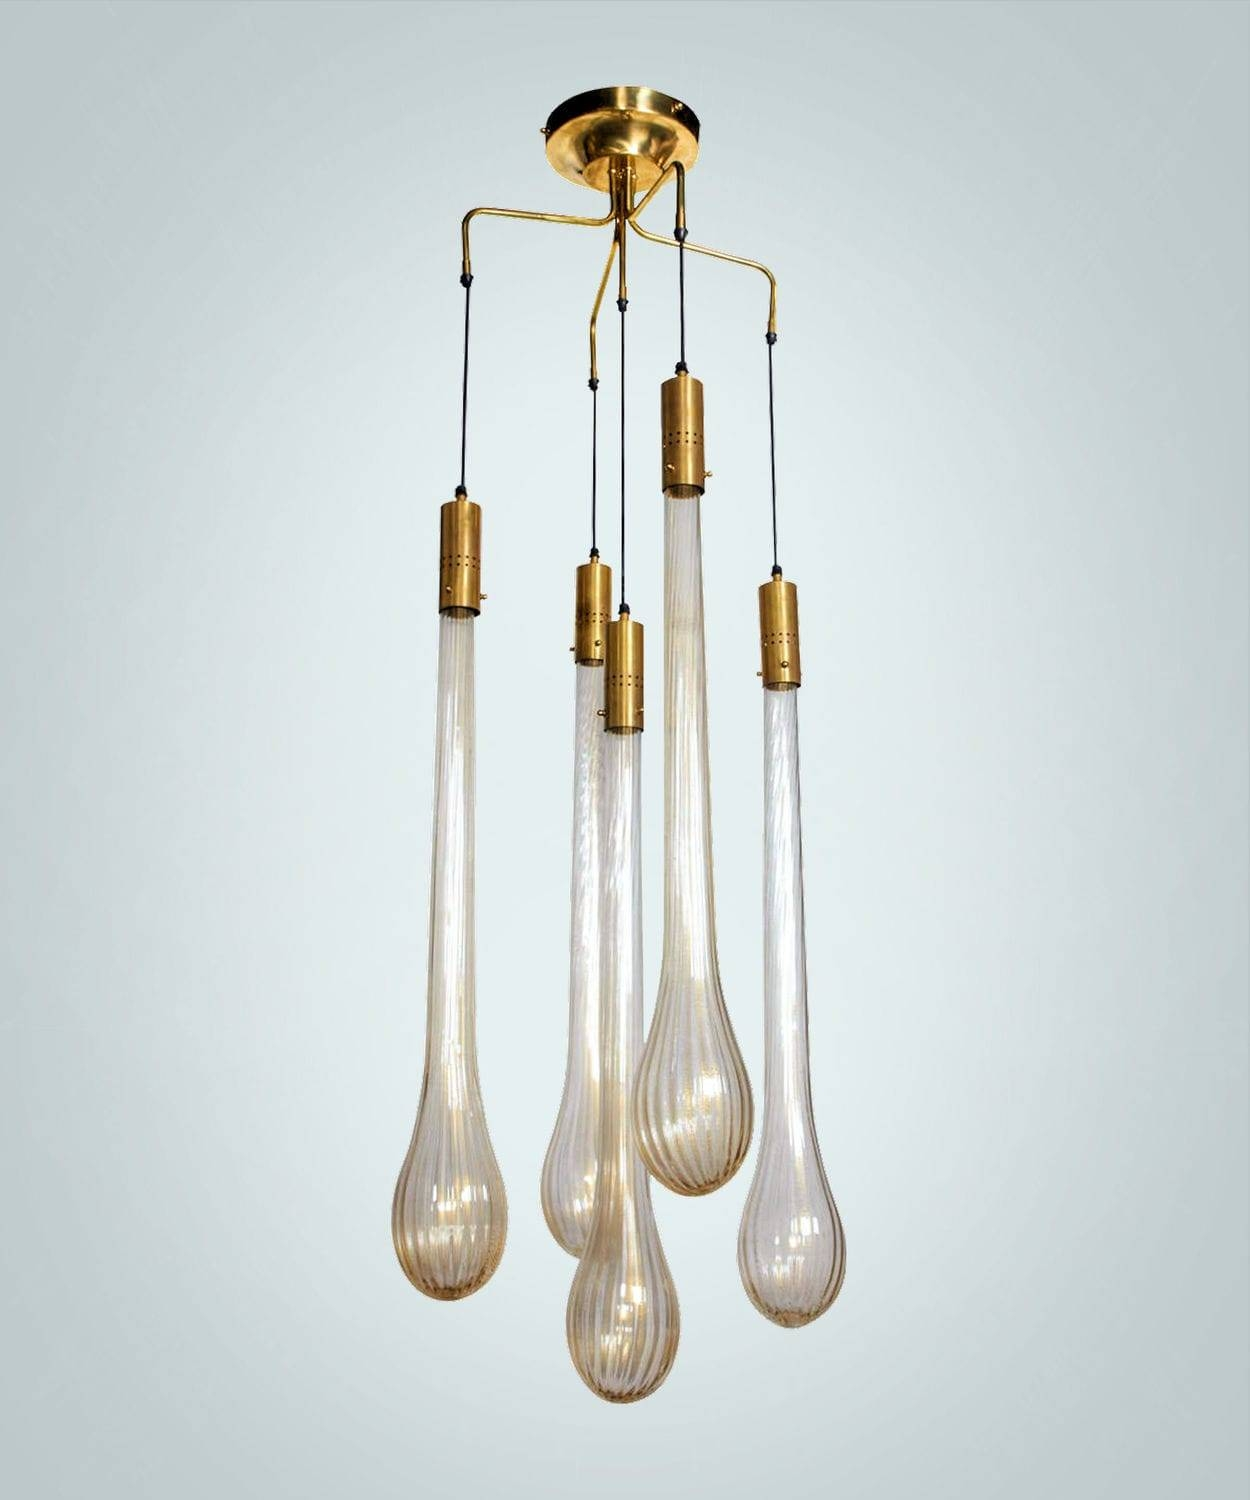 Pendant Lamp / Original Design / Blown Glass / Murano Glass - Drop pertaining to Murano Glass Lights Pendants (Image 10 of 15)